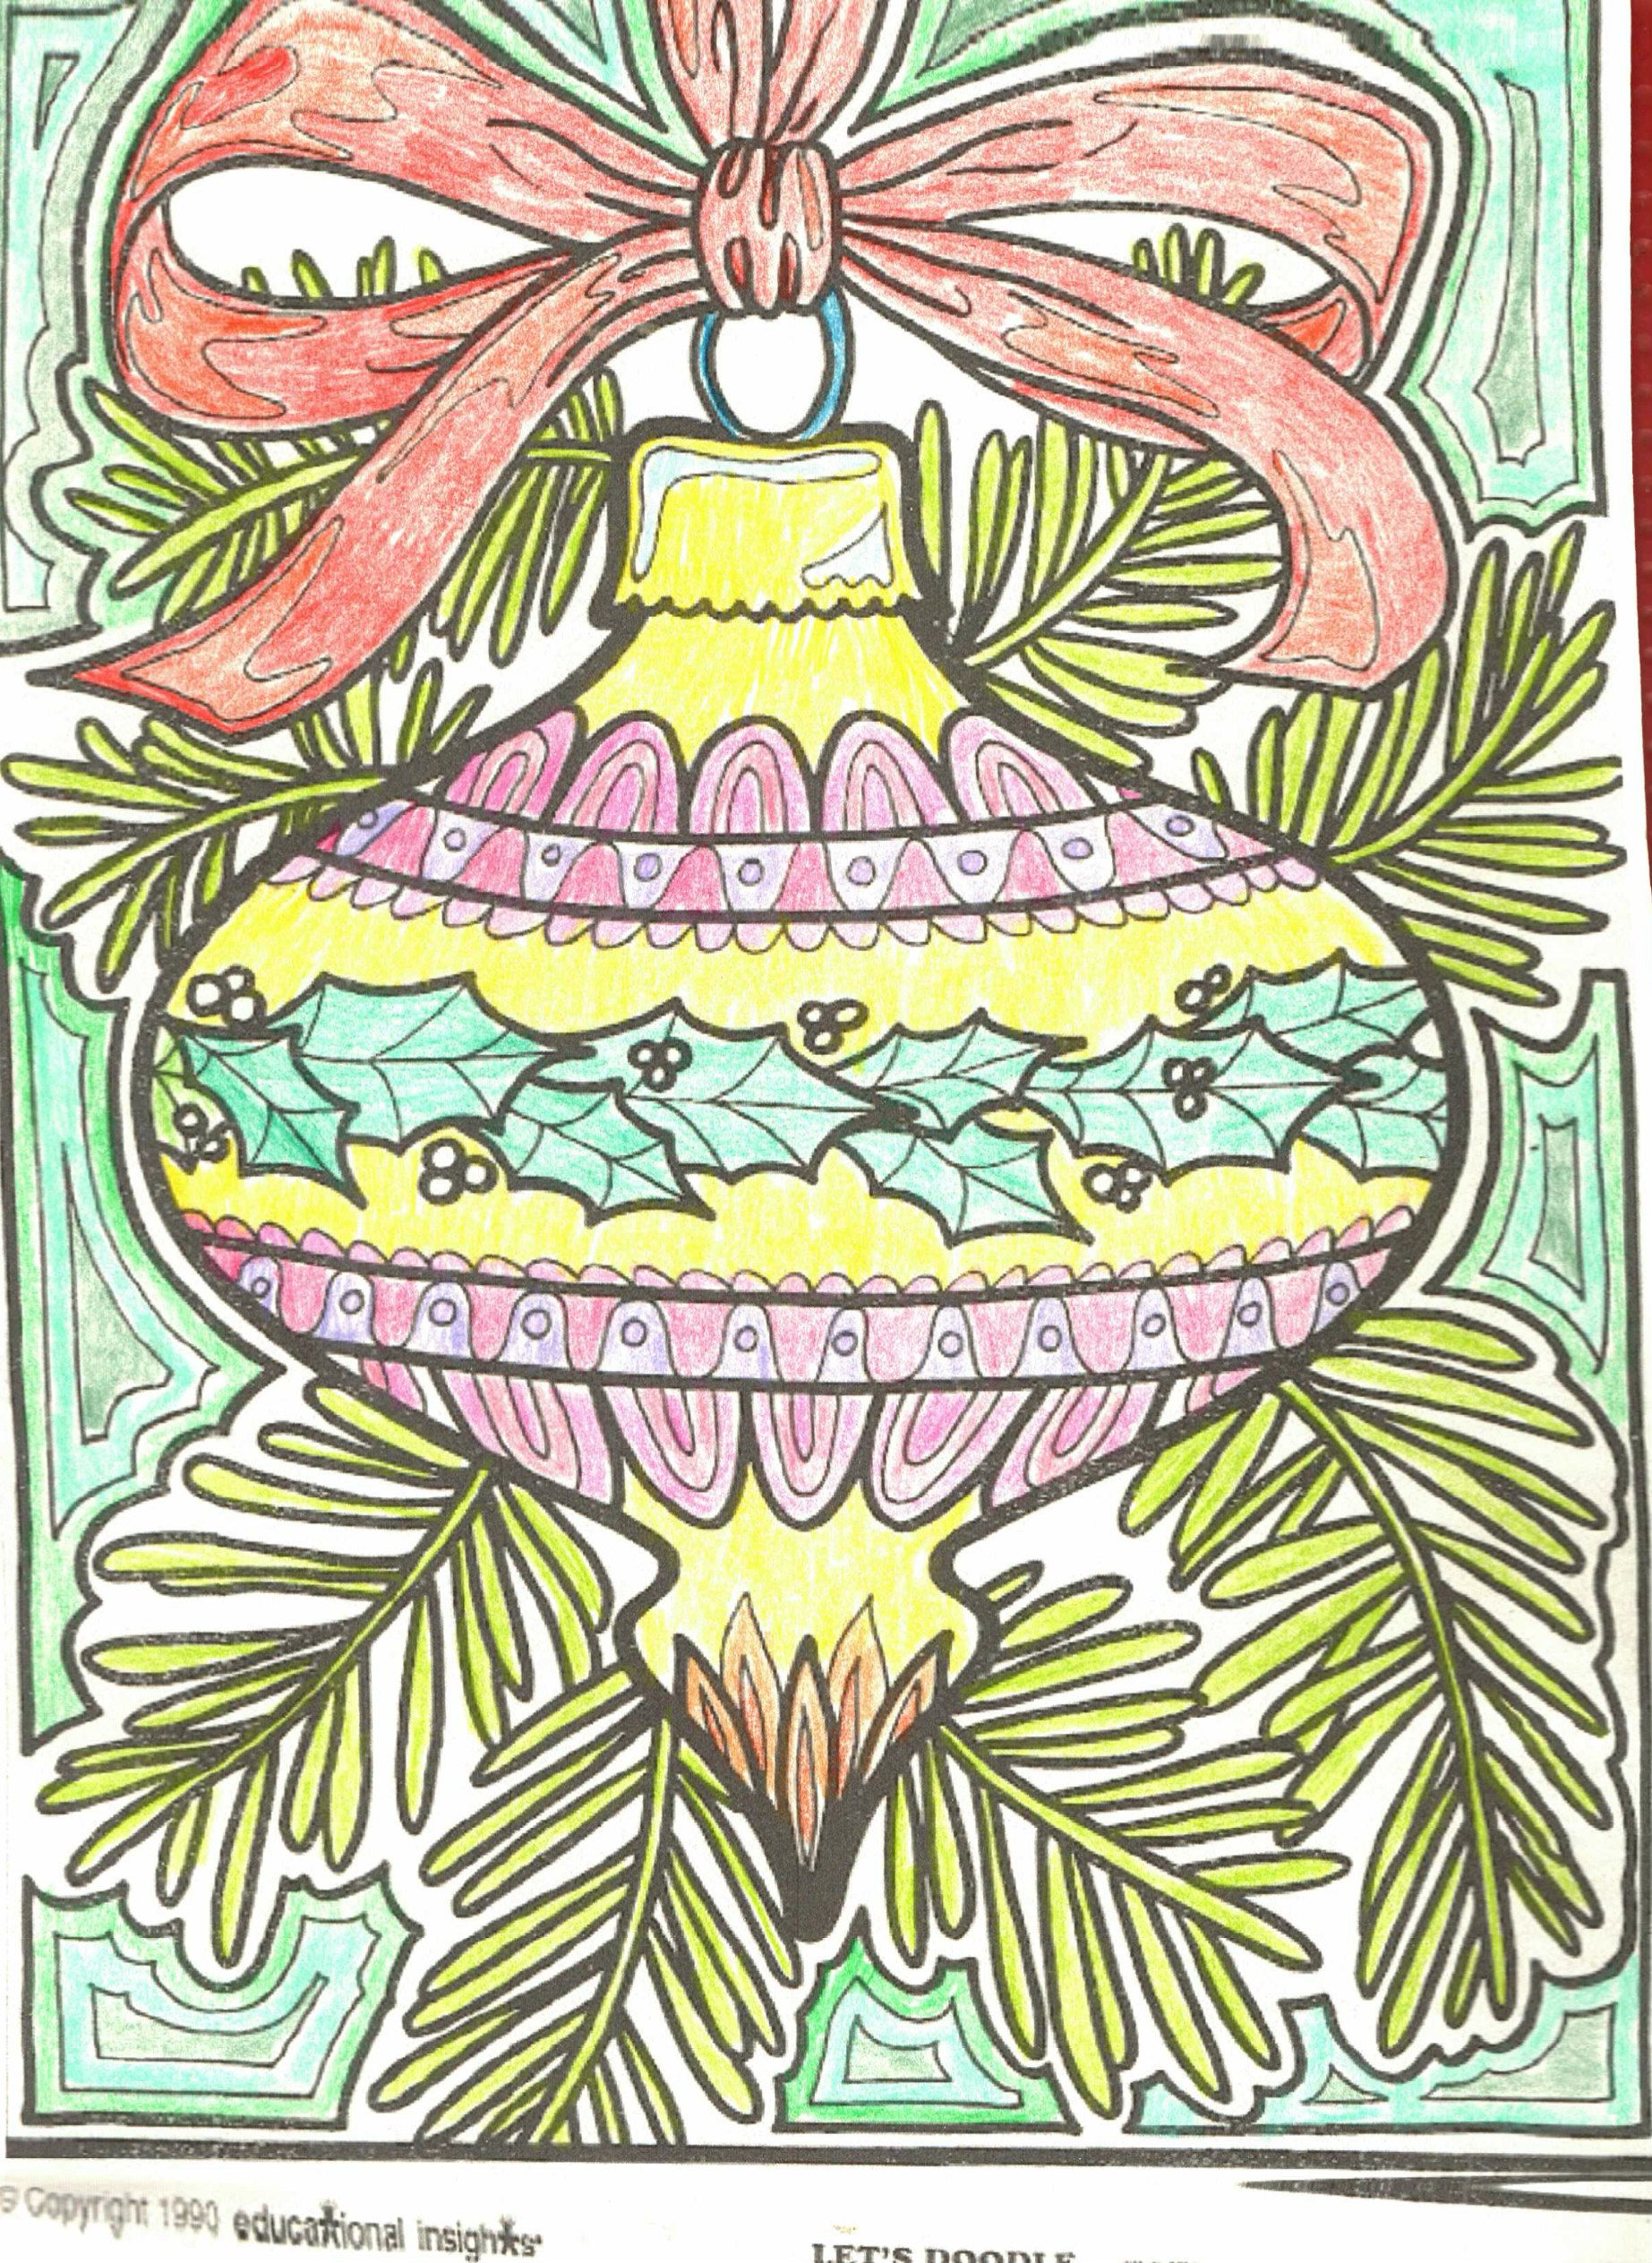 Pin by Lillie Bushnell on Scrapbooking | Pinterest | Adult coloring ...